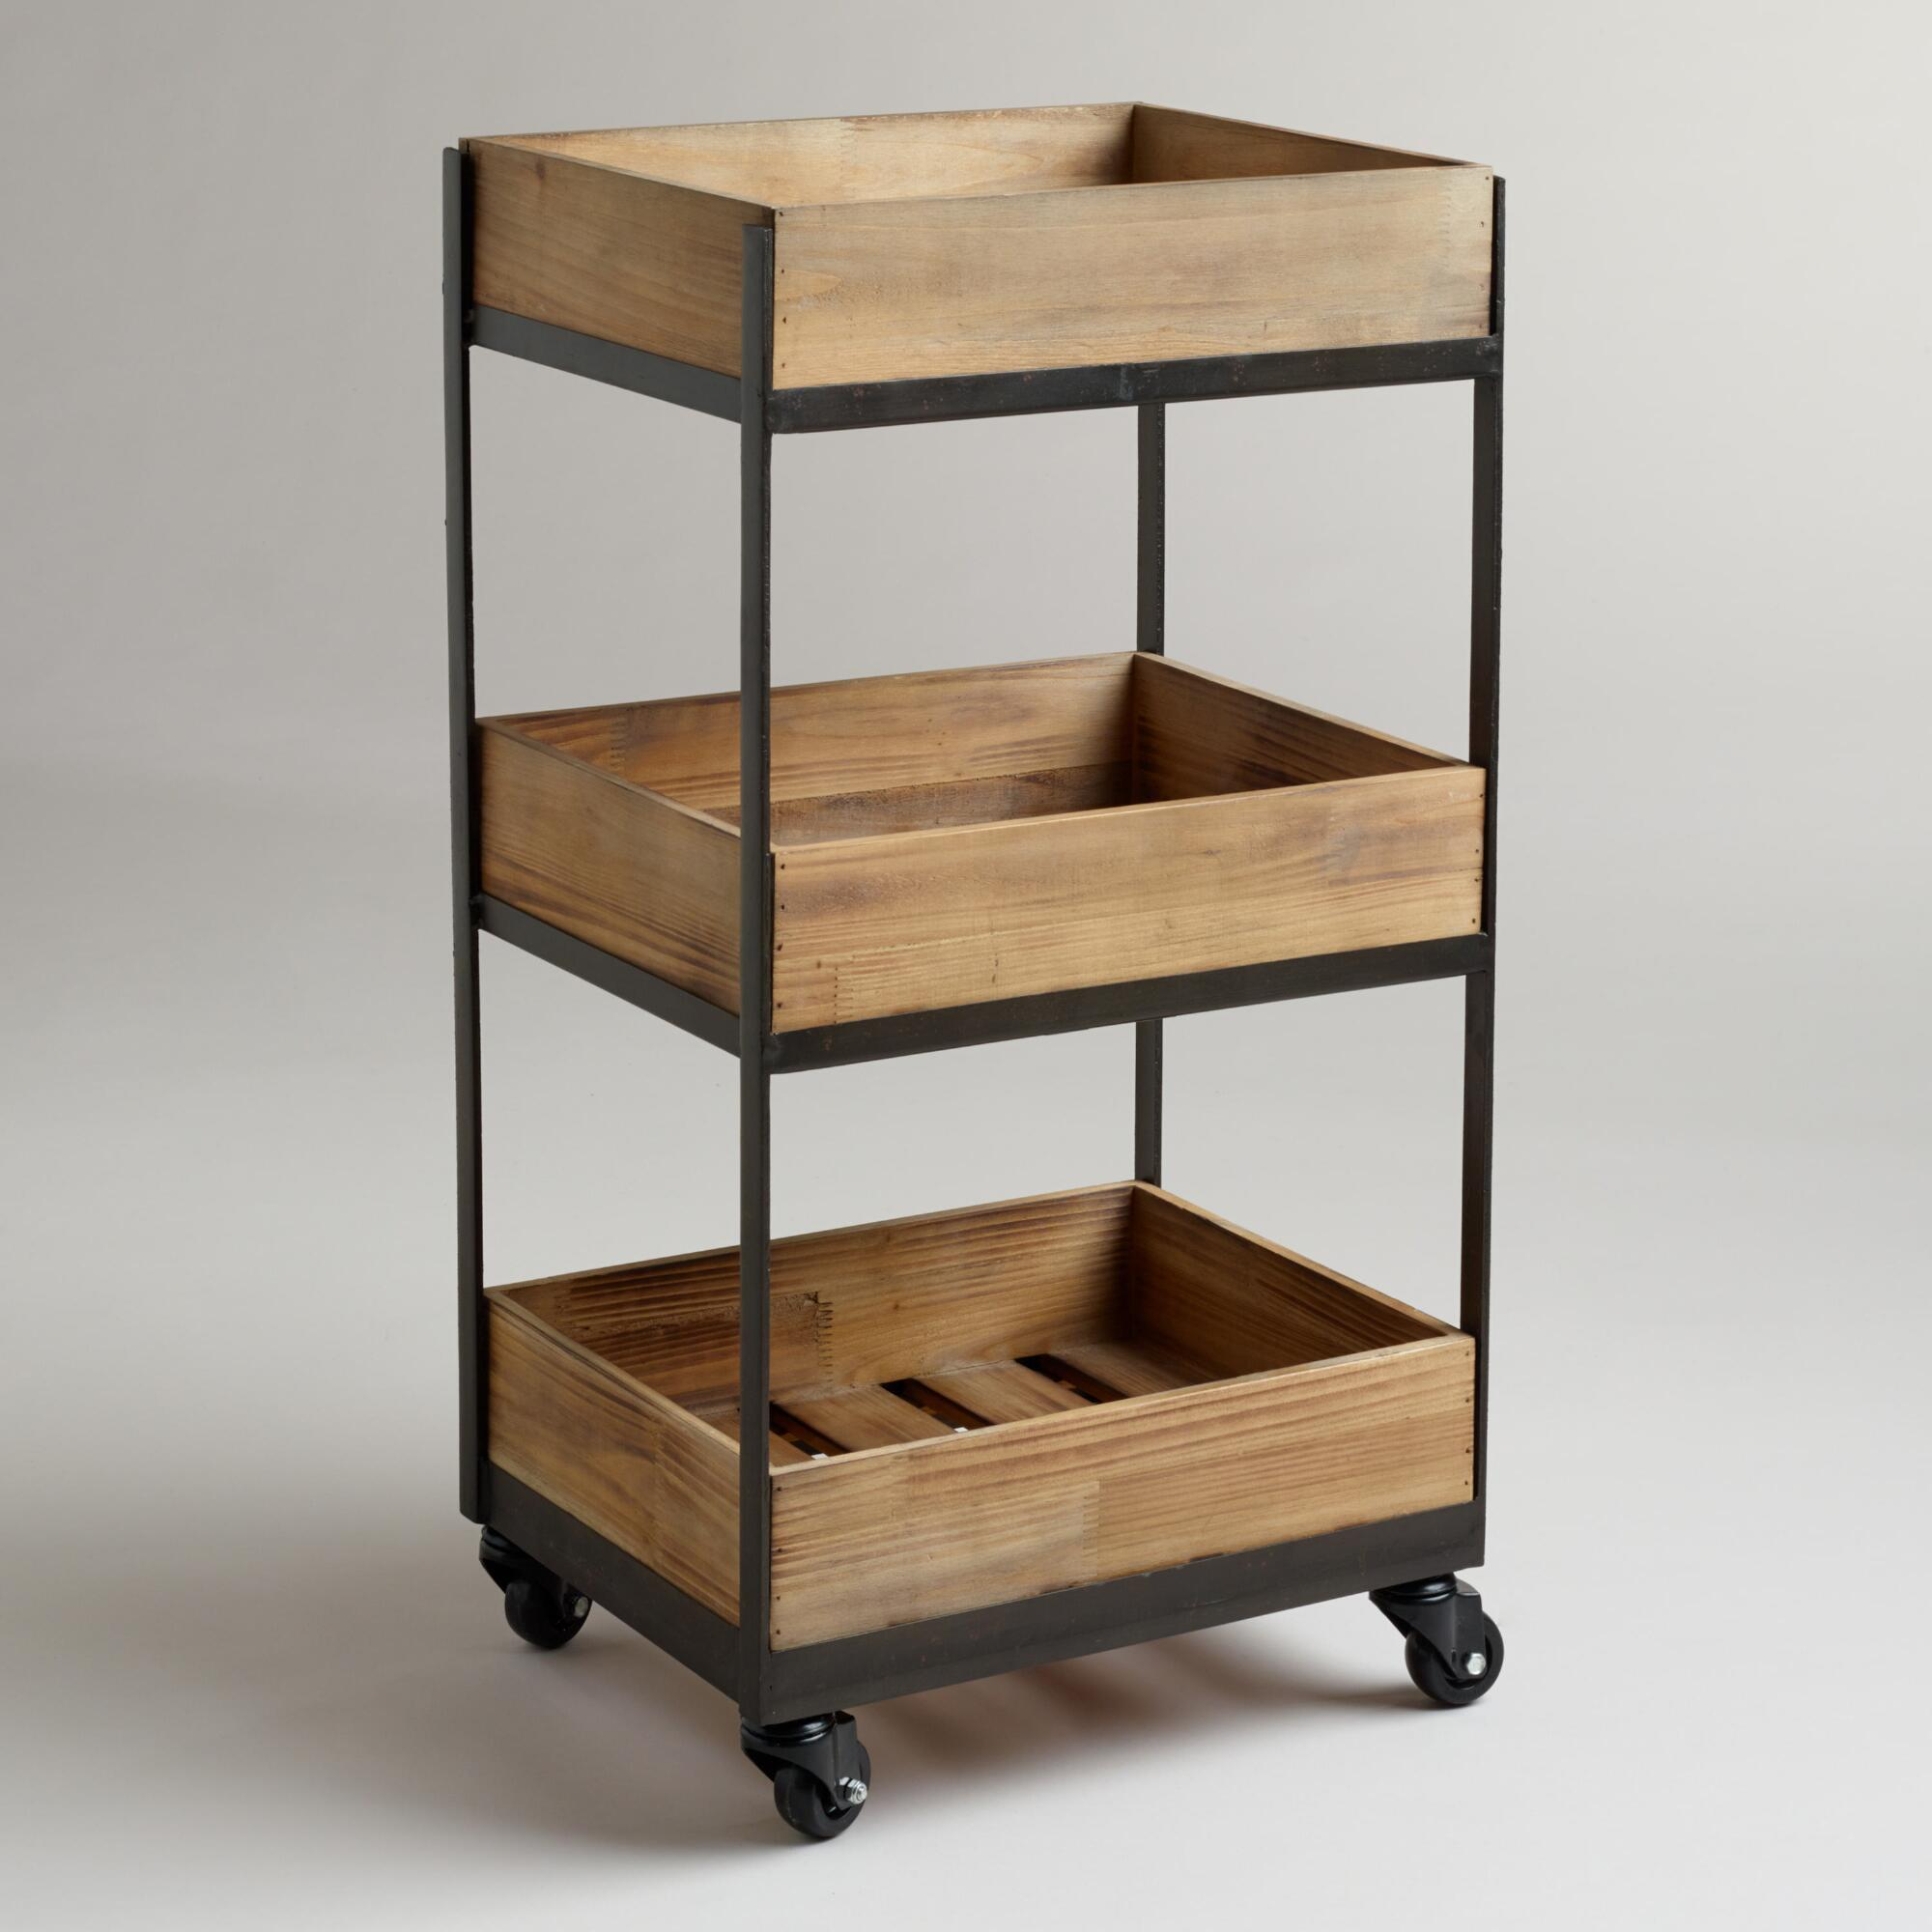 Marvellous microwave cart ikea for kitchen furniture design with microwave cart with storage ikea